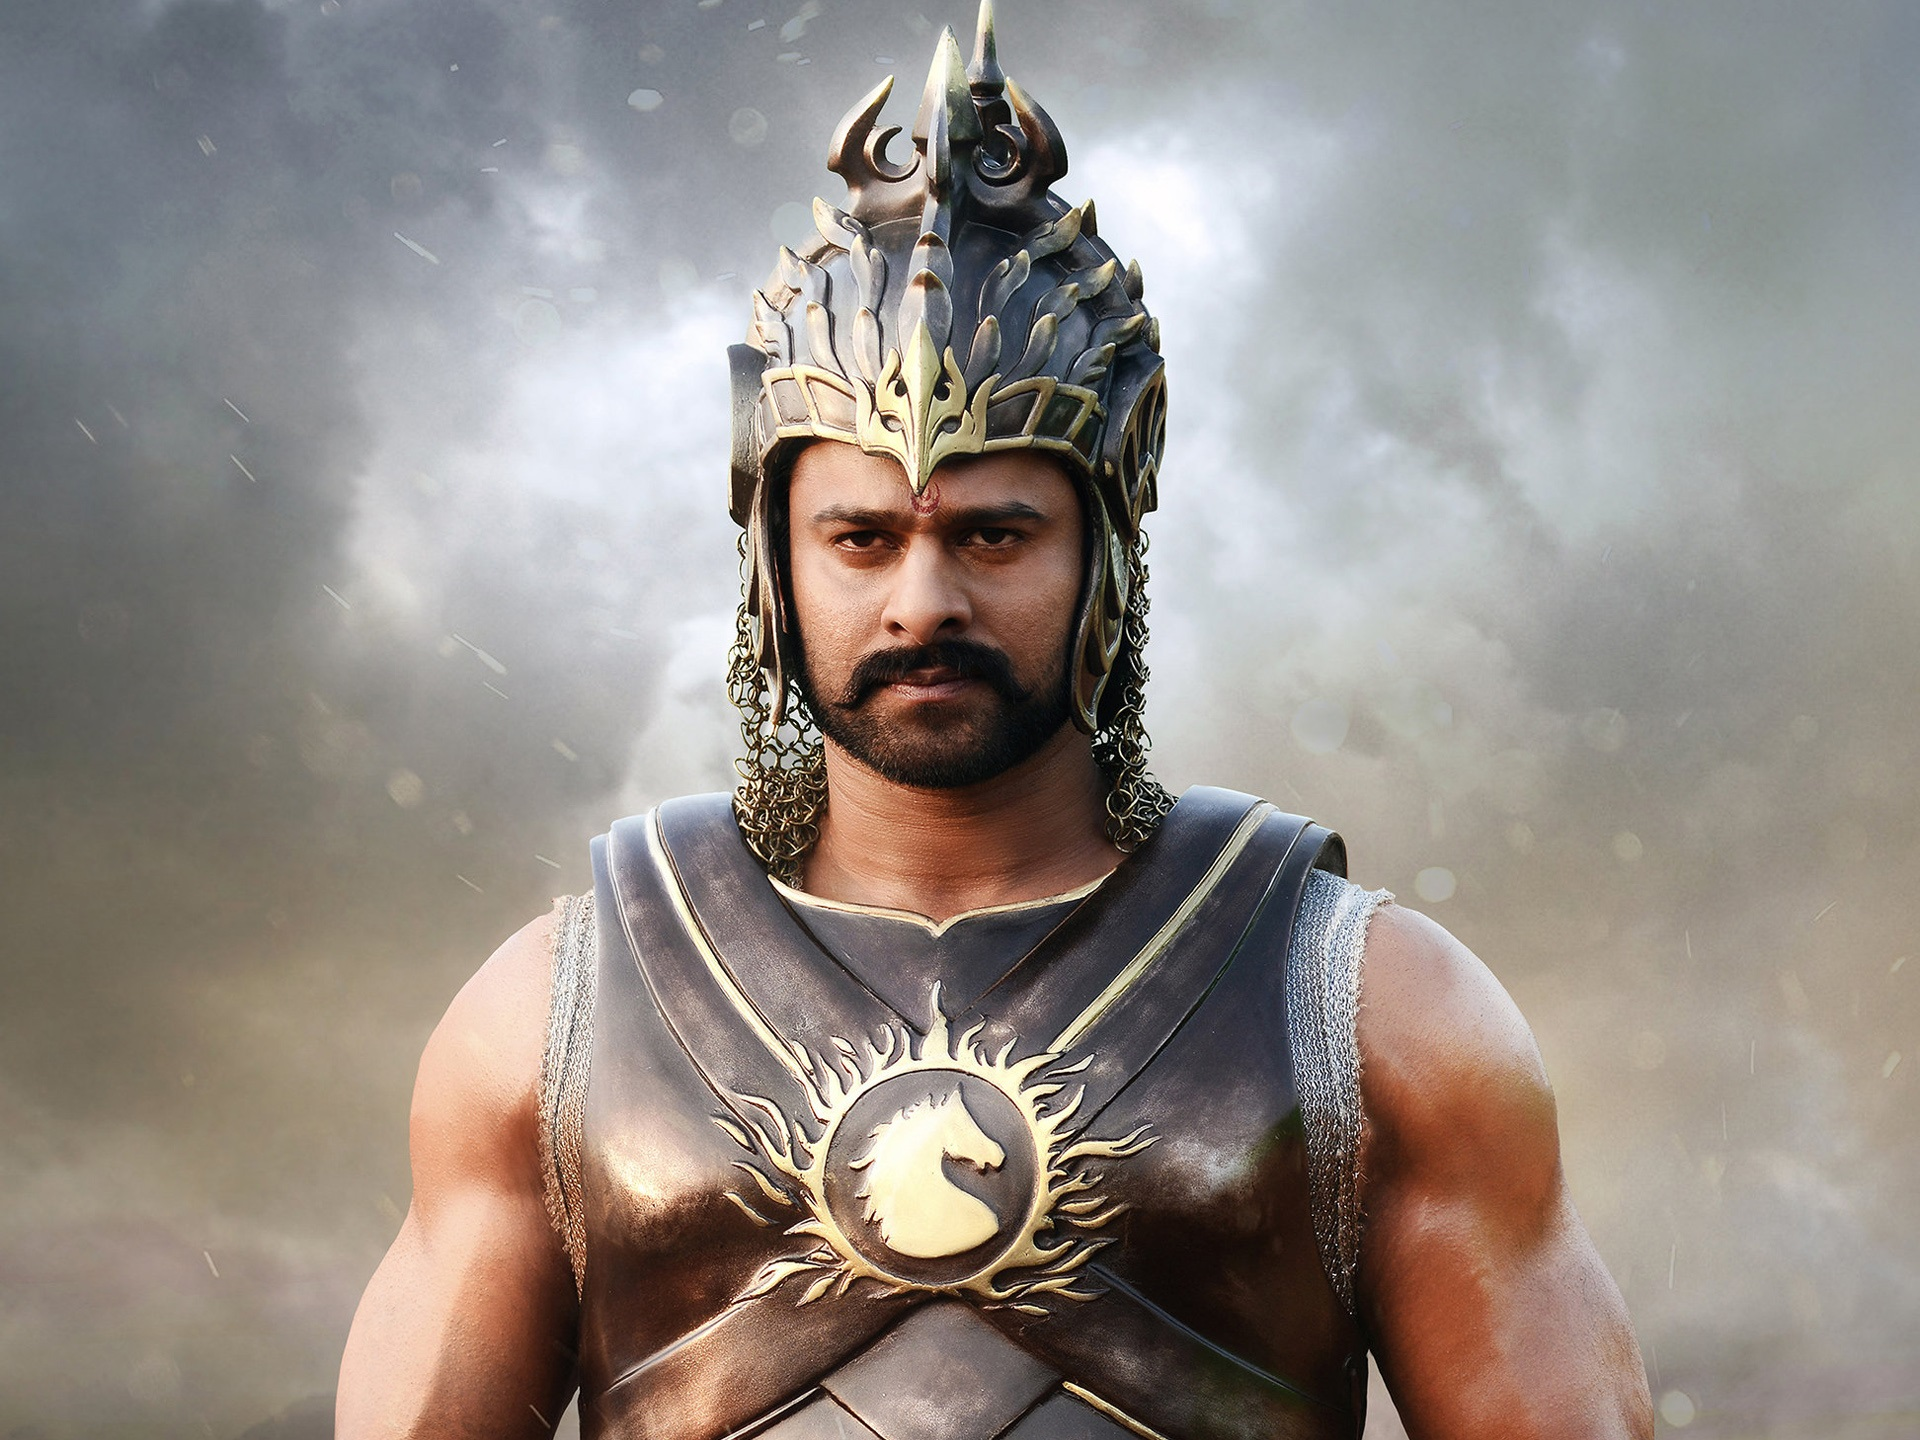 Wallpaper Baahubali: The Beginning 1920x1440 HD Picture, Image